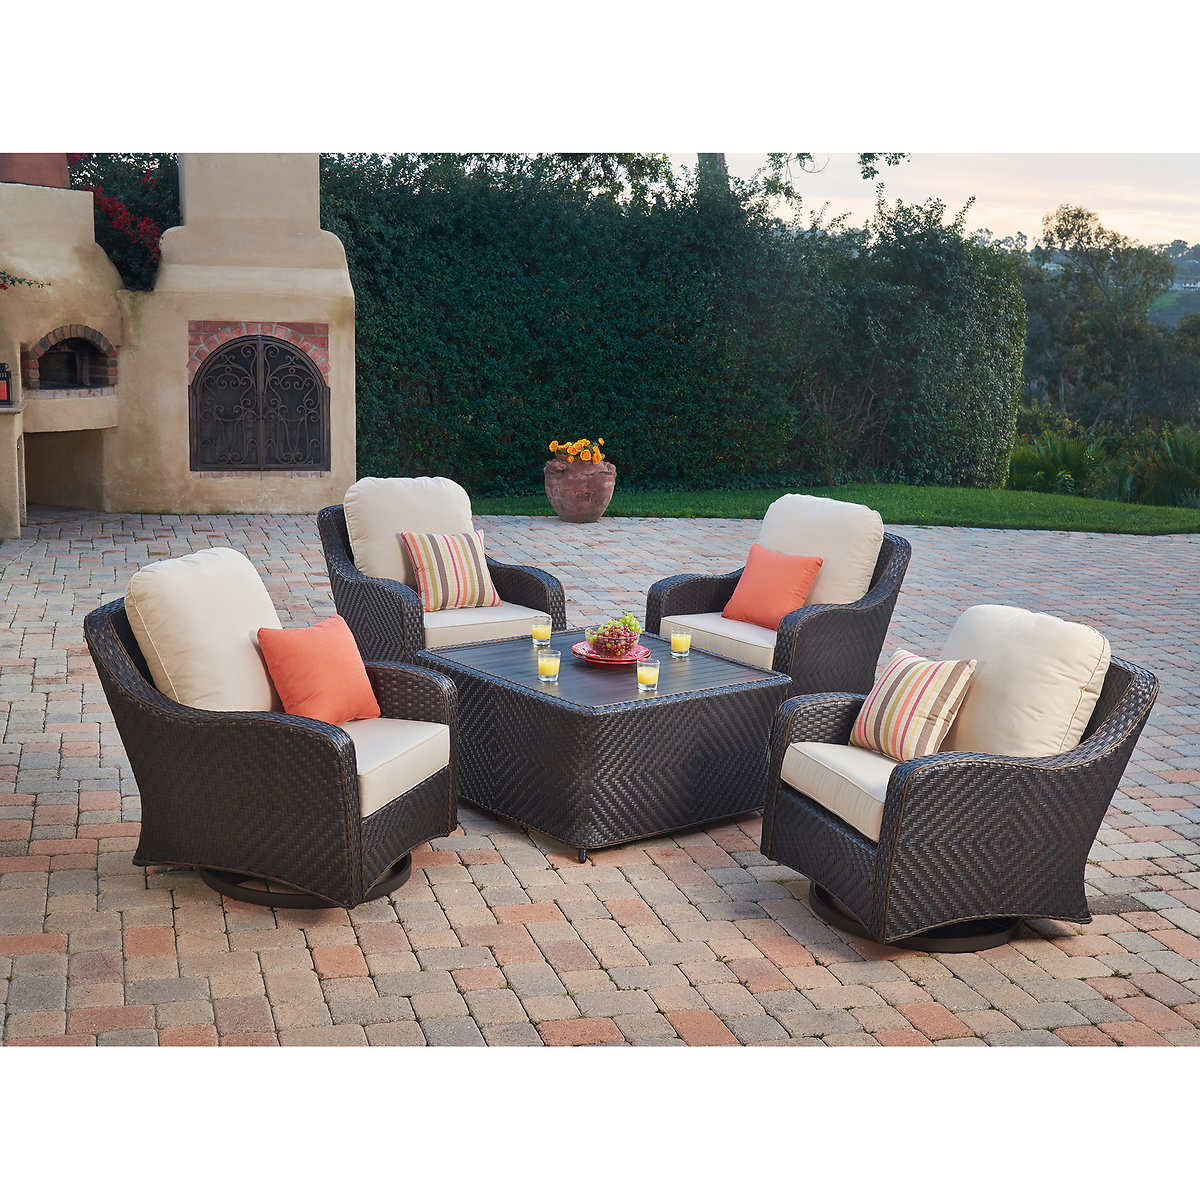 1 1 - Canyon Park 5-piece Chat Set By Mission Hills